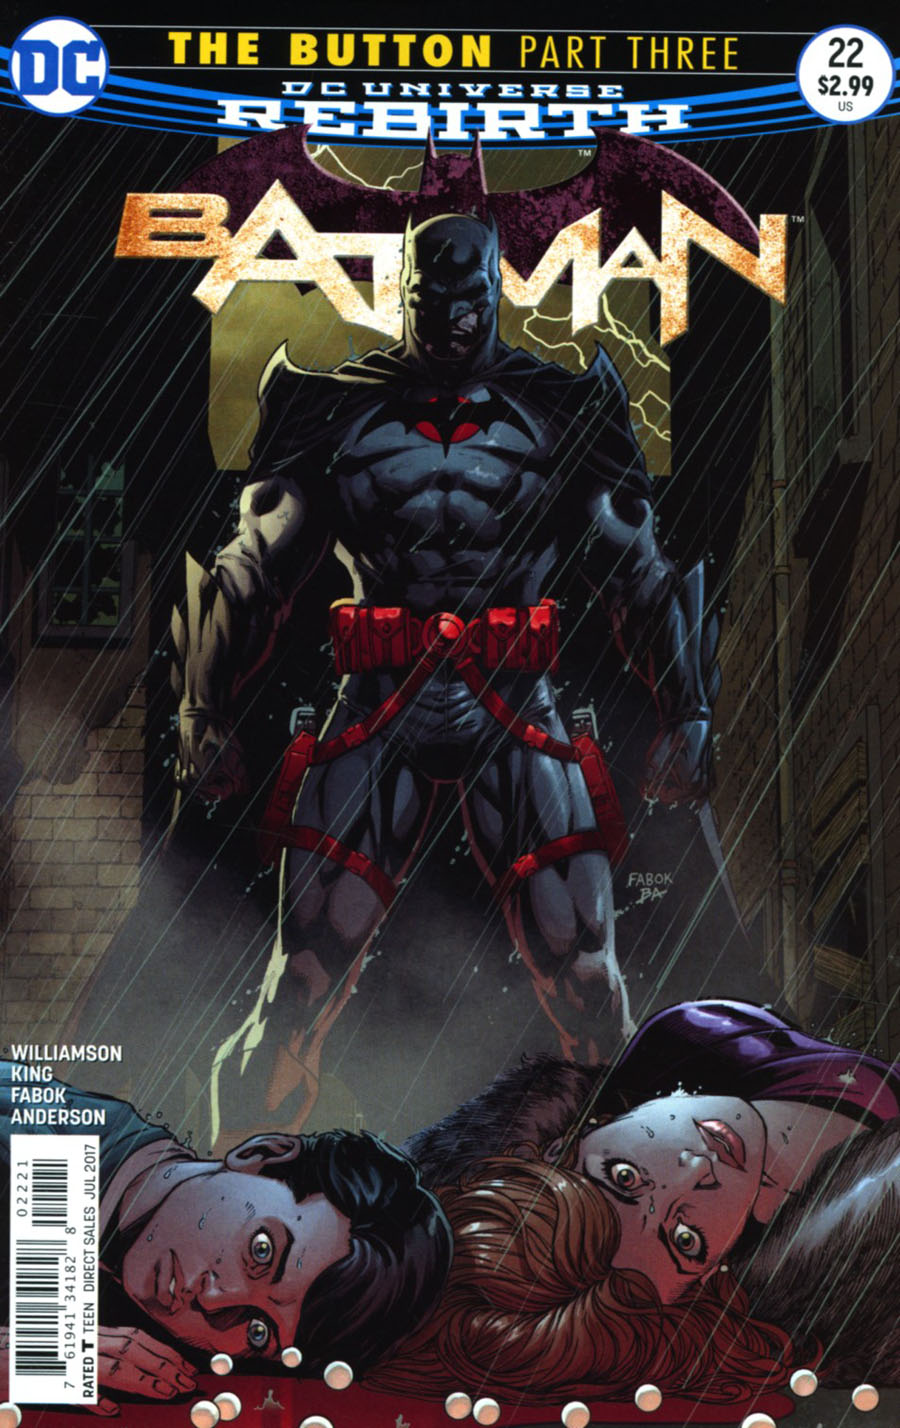 Batman 22 - The Button 3